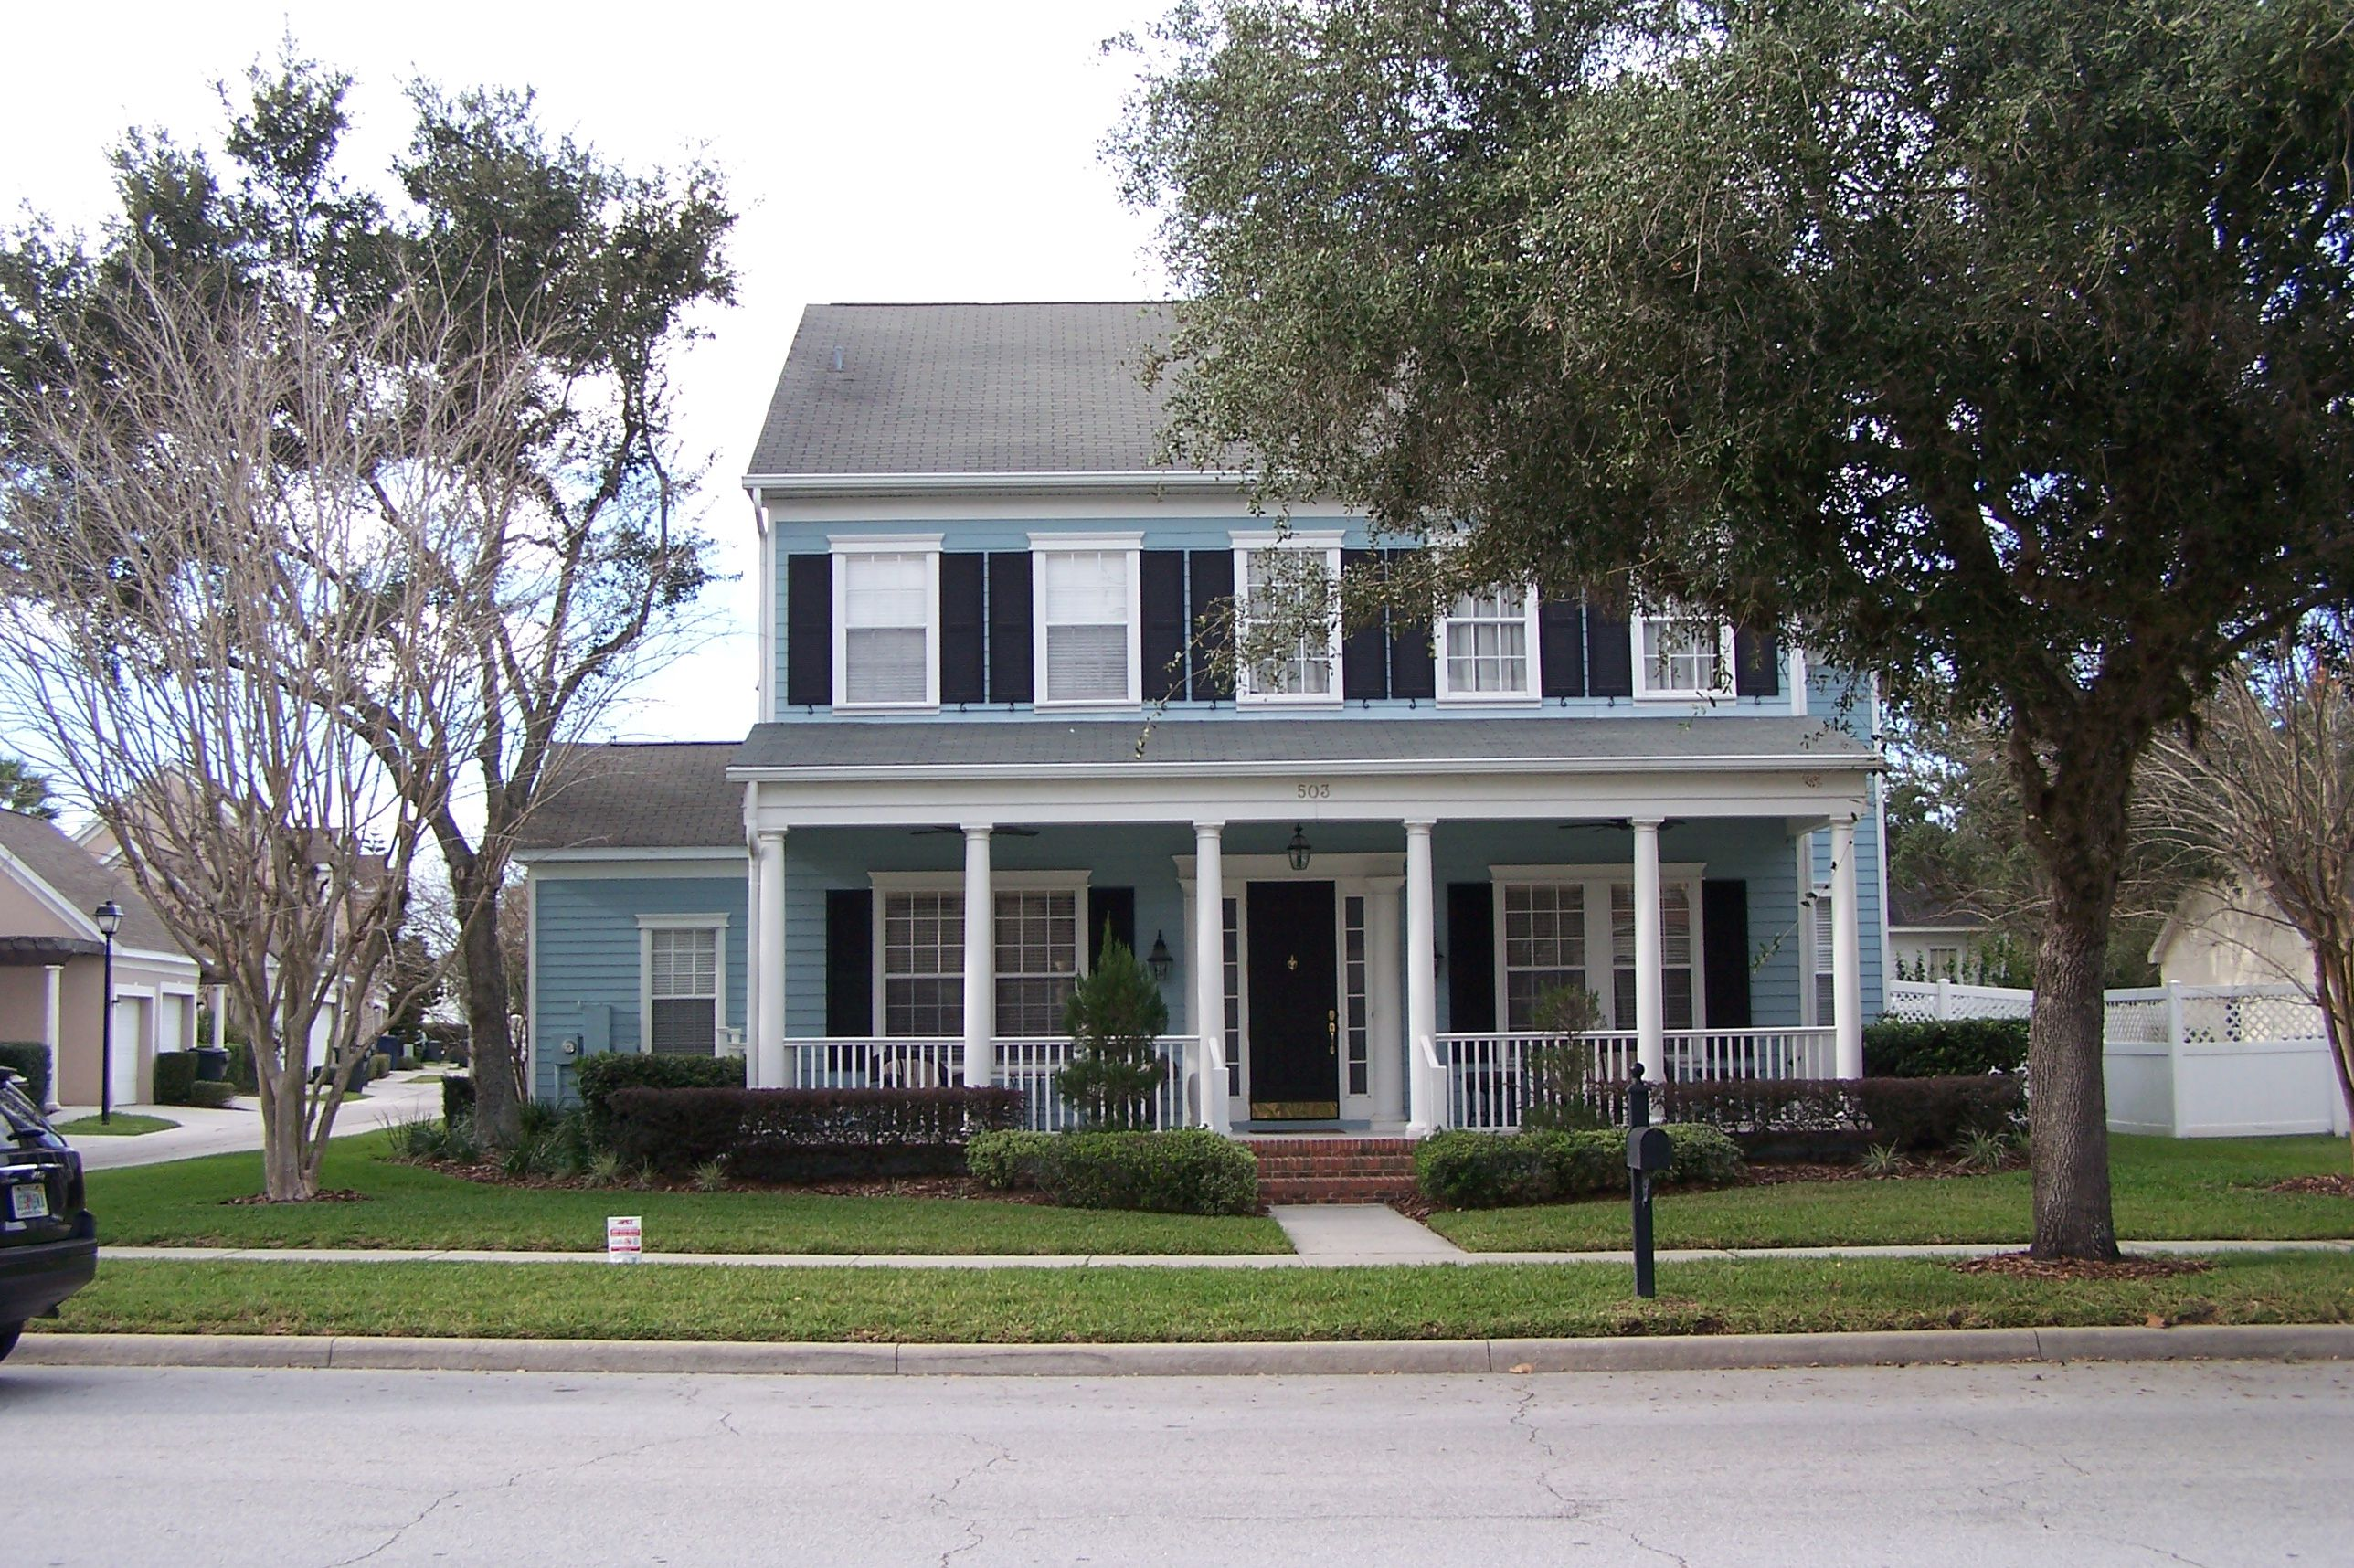 Blue-Sided Farmhouse with Shutters and full-sized porch along the front